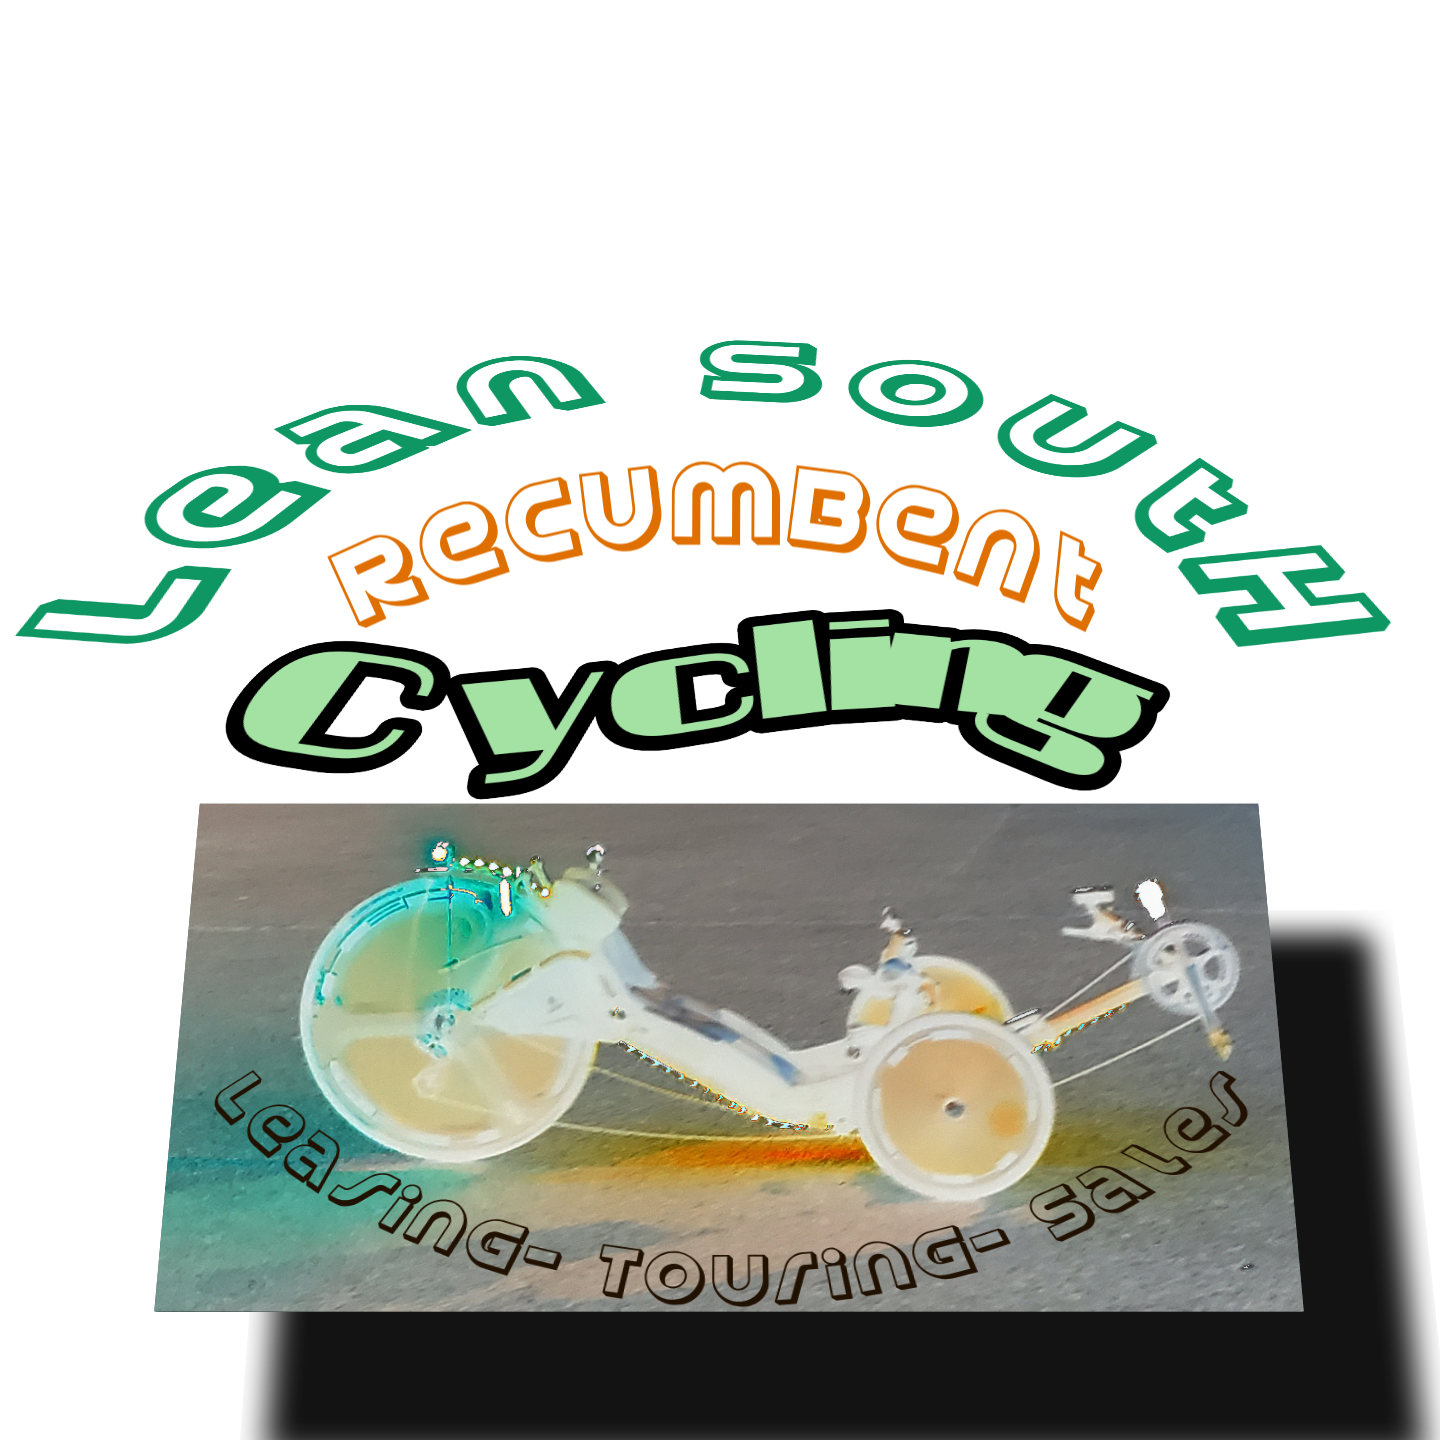 Leansouthtrikes